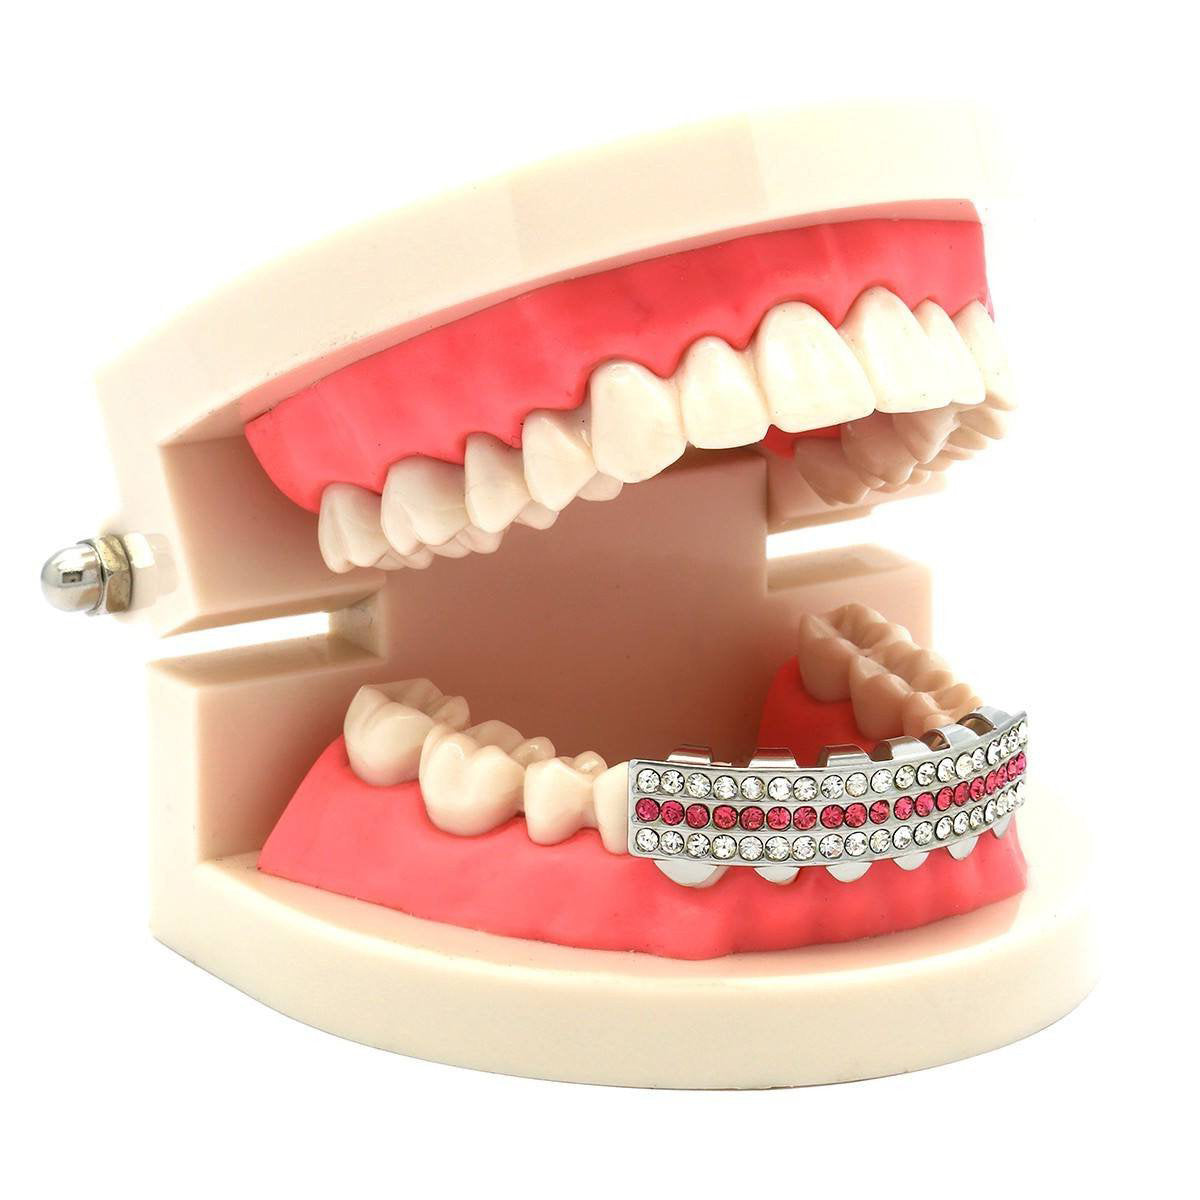 SILVER BOTTOM GRILLZ 3 ROW PINK